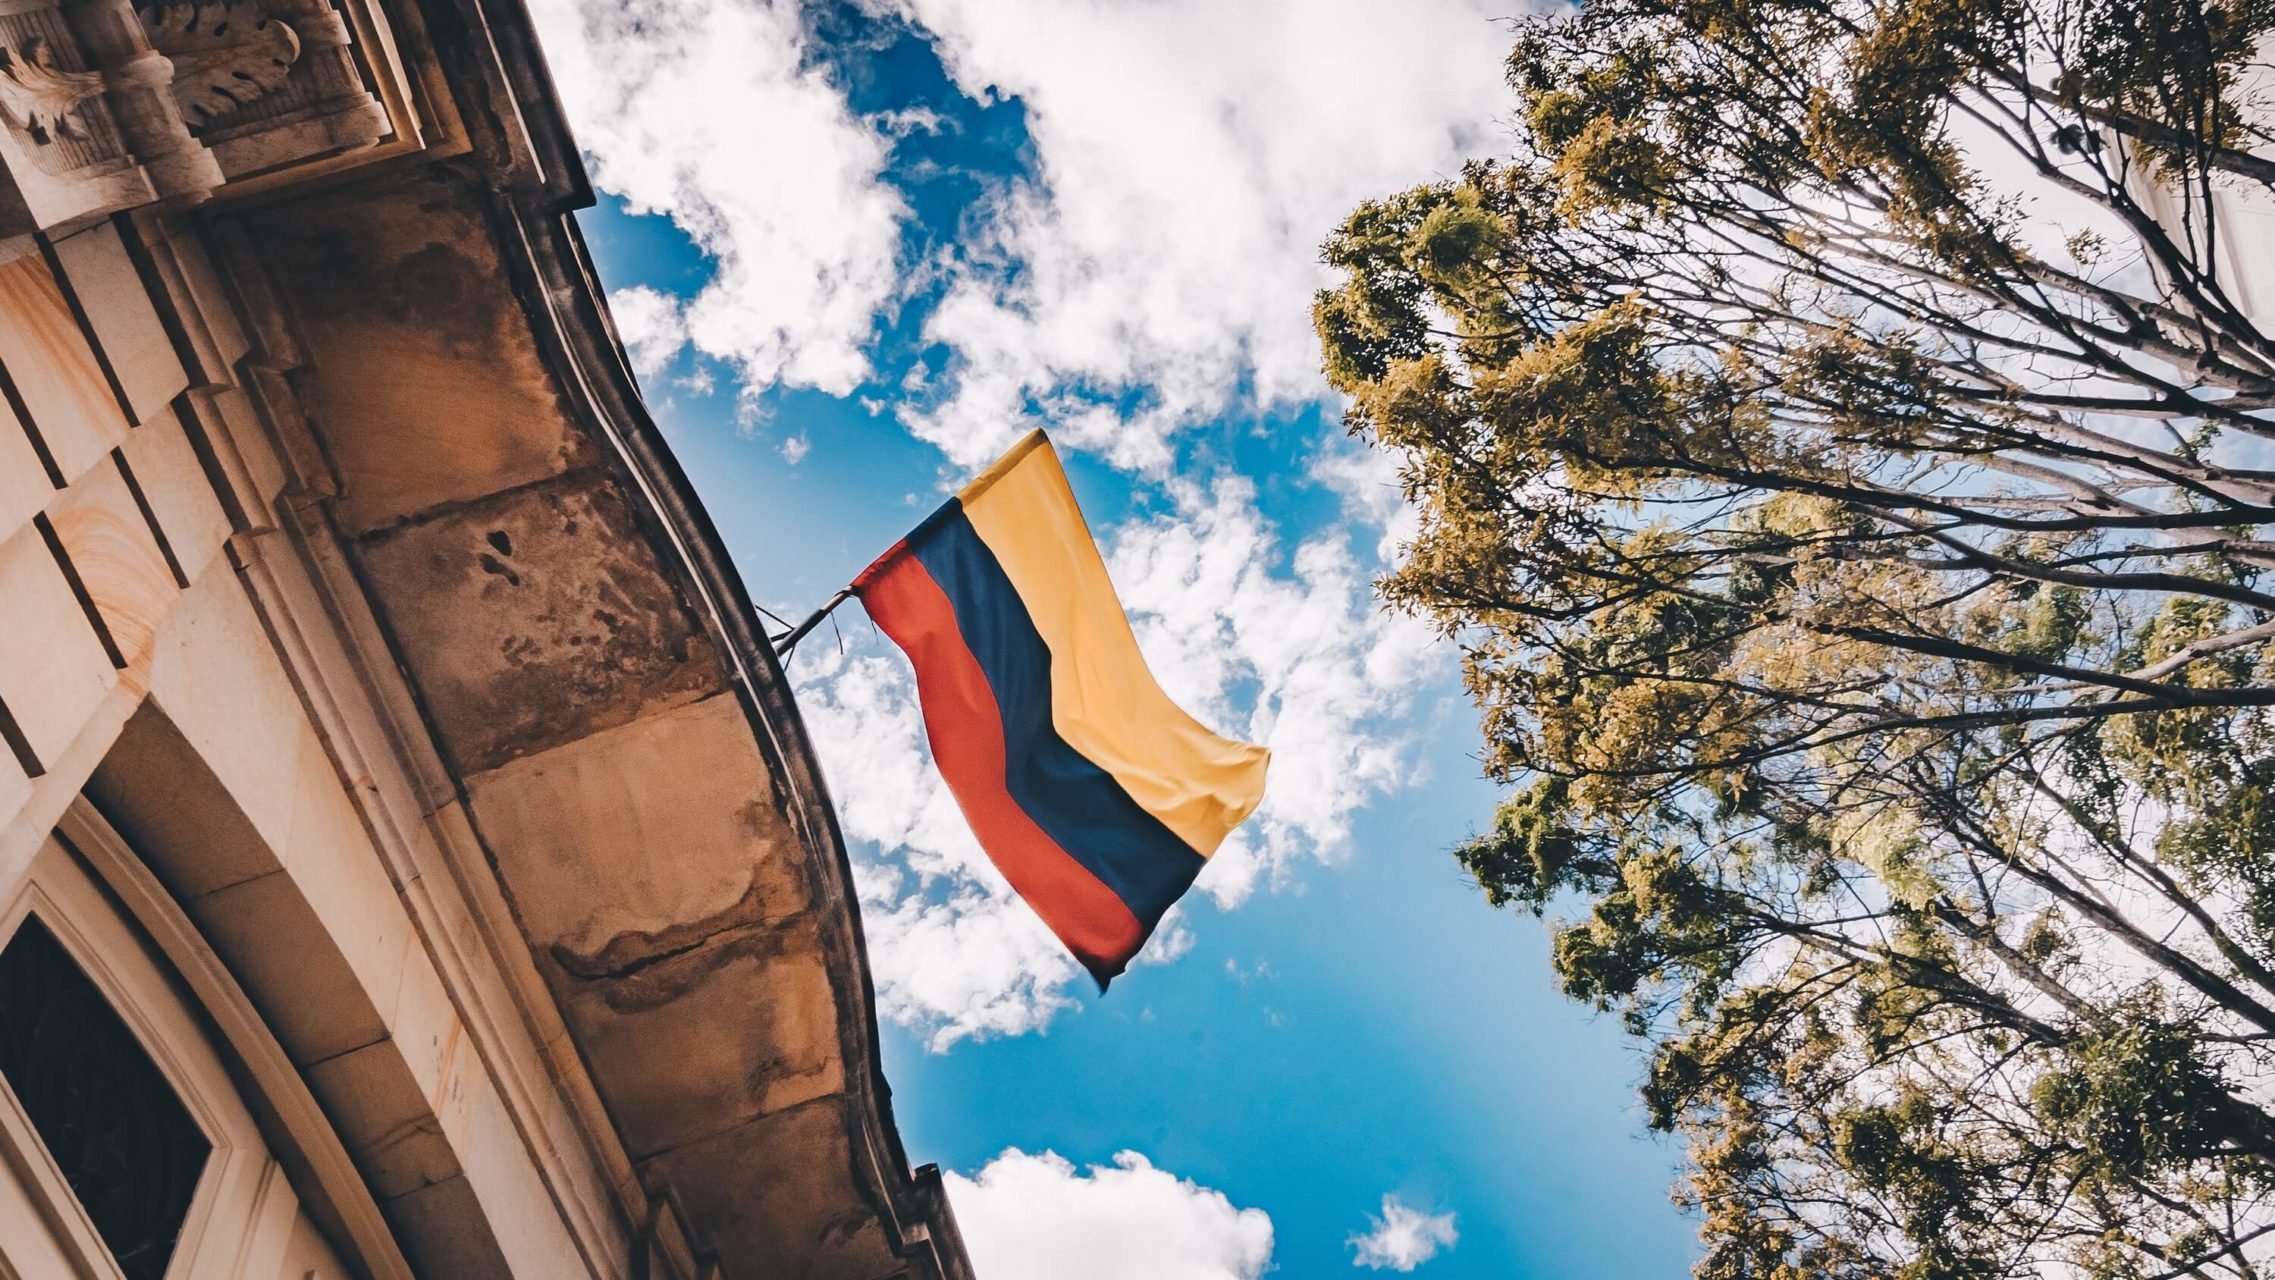 Colombian flag hung on building facade against a clear blue sky